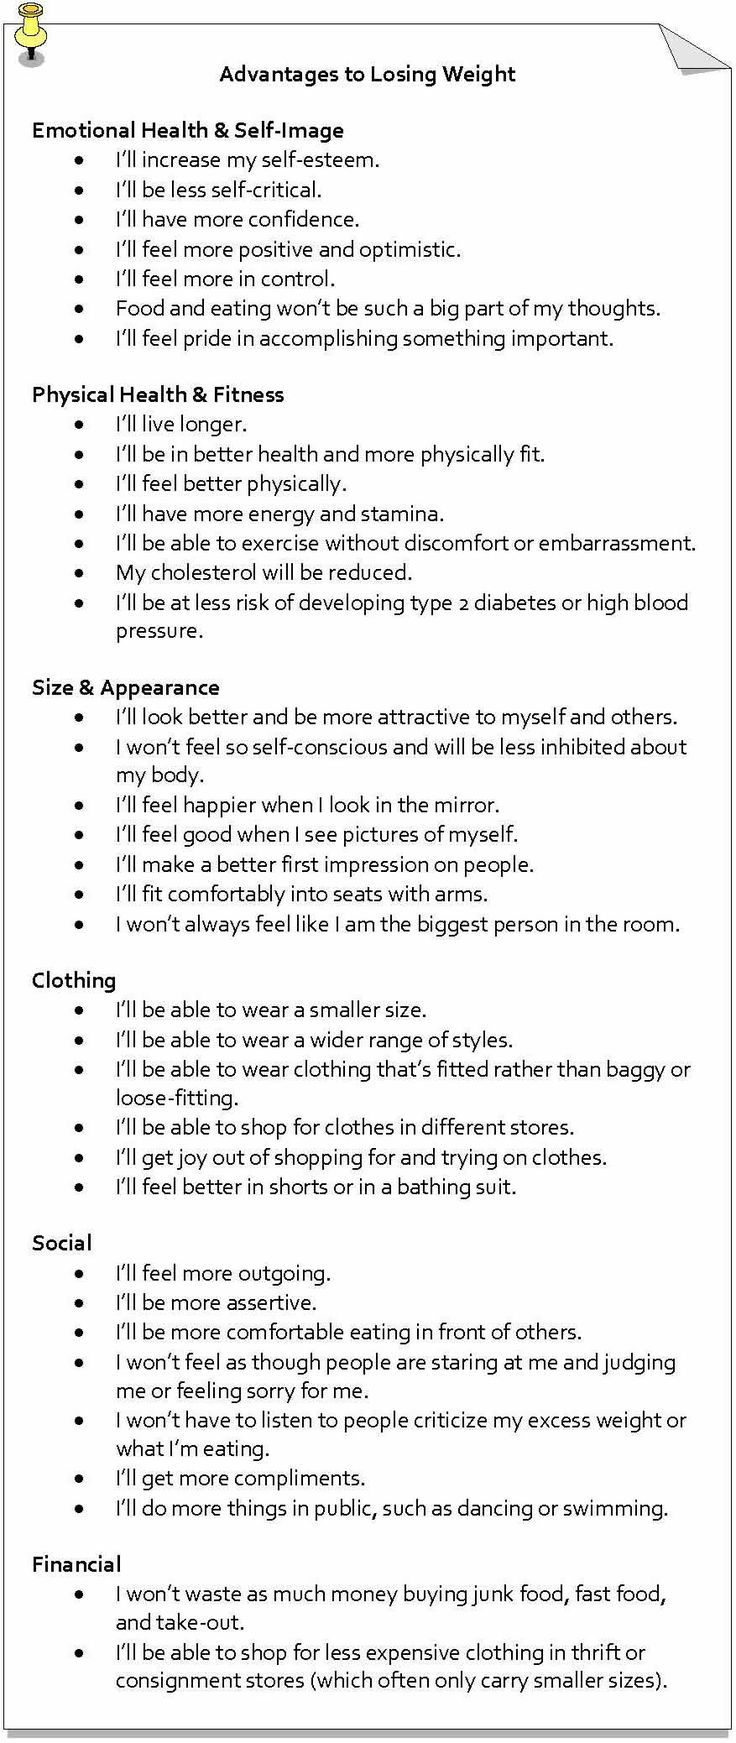 Worksheets Dying To Be Thin Worksheet 26 best the beck diet solution images on pinterest weight loss nice my experience week one